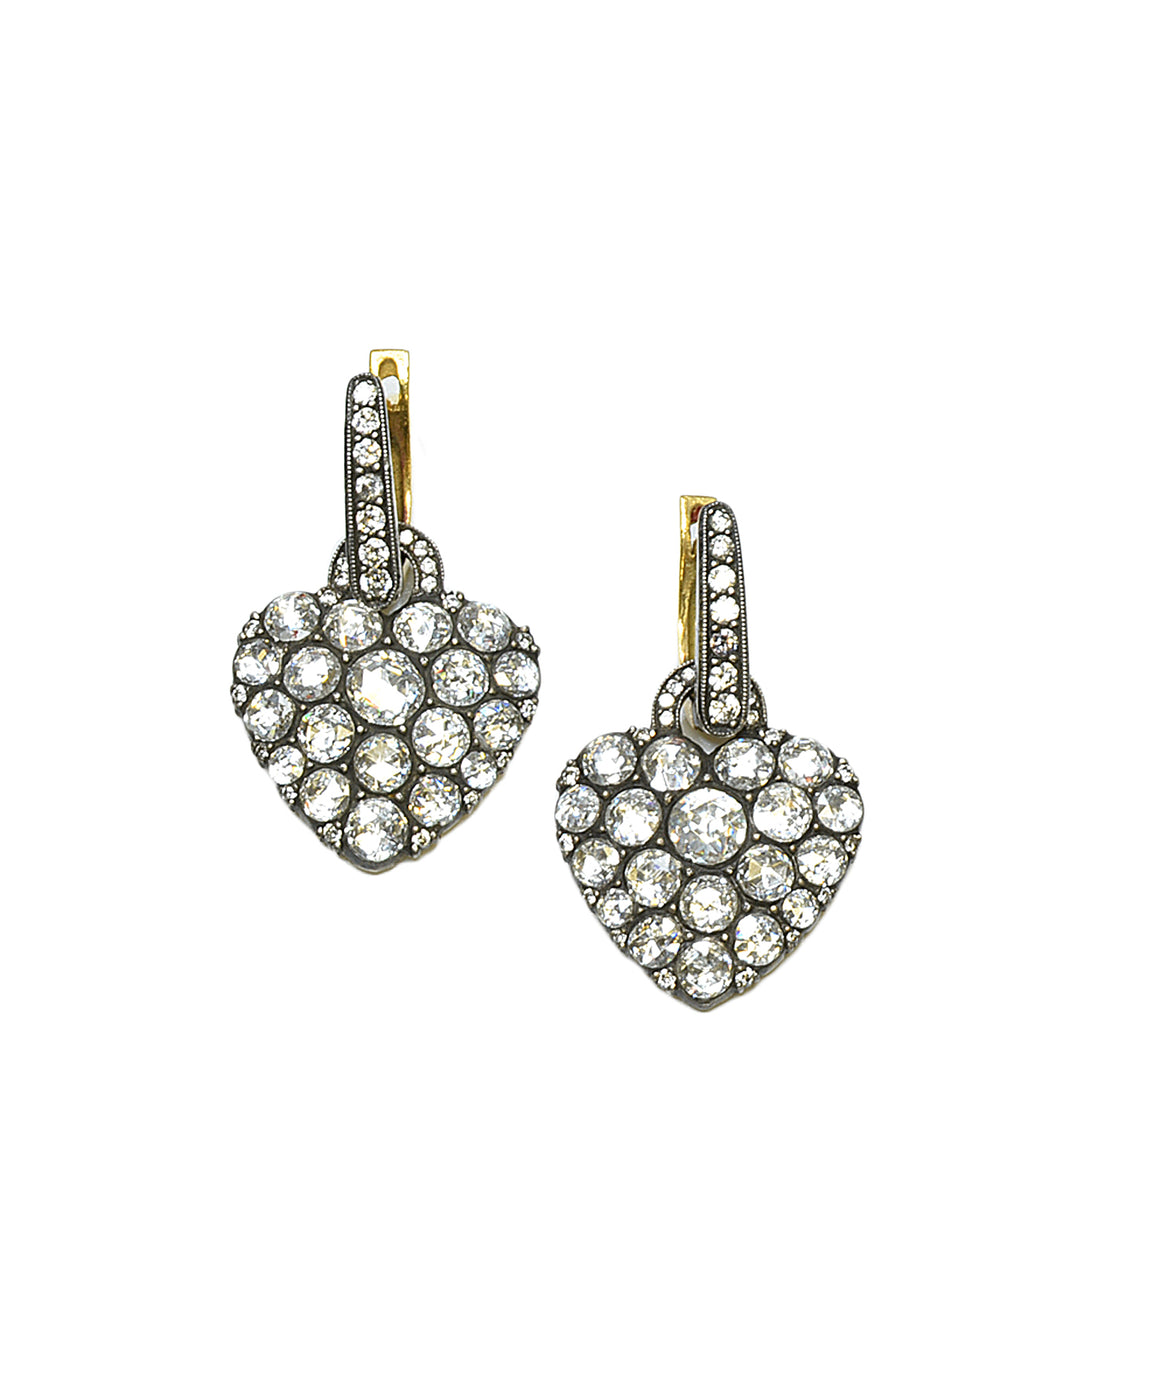 Heart earrings with rose-cut diamonds